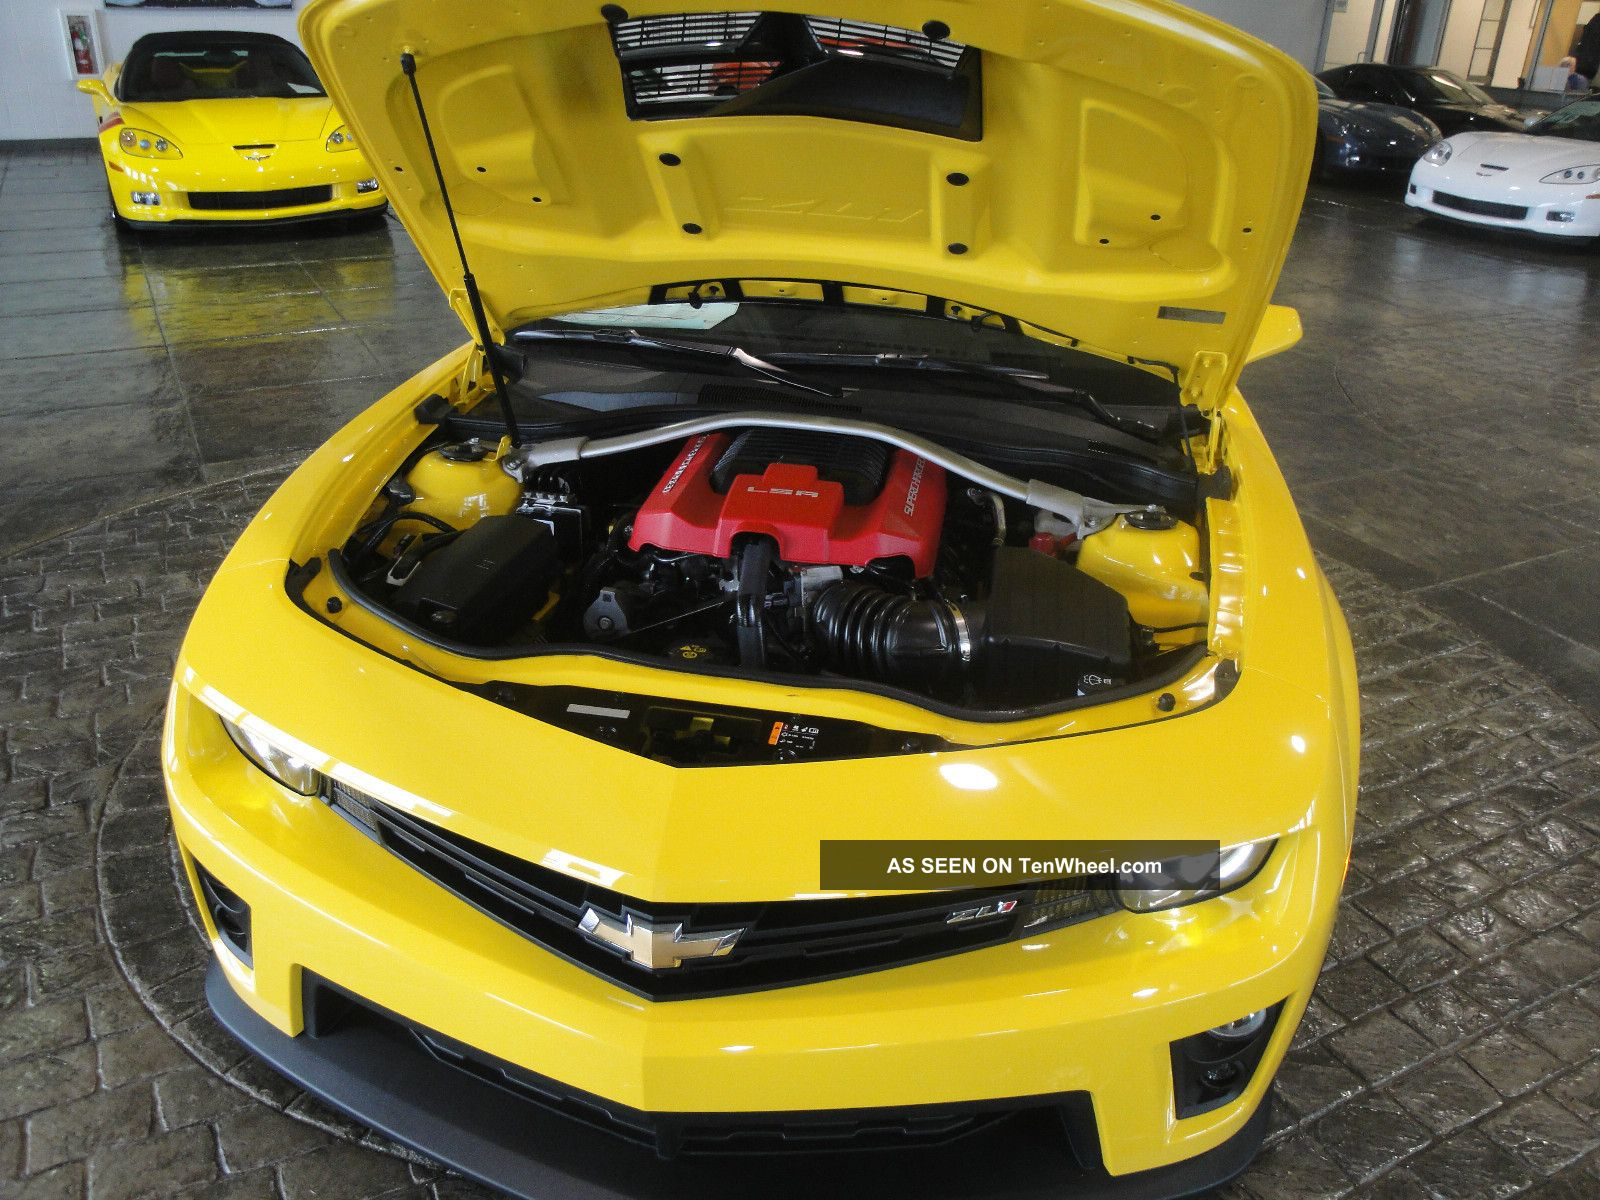 2013 Rally Yellow Supercharged Camaro Zl1 Automatic Carbon ... 2013 Camaro Zl1 Supercharged Specs